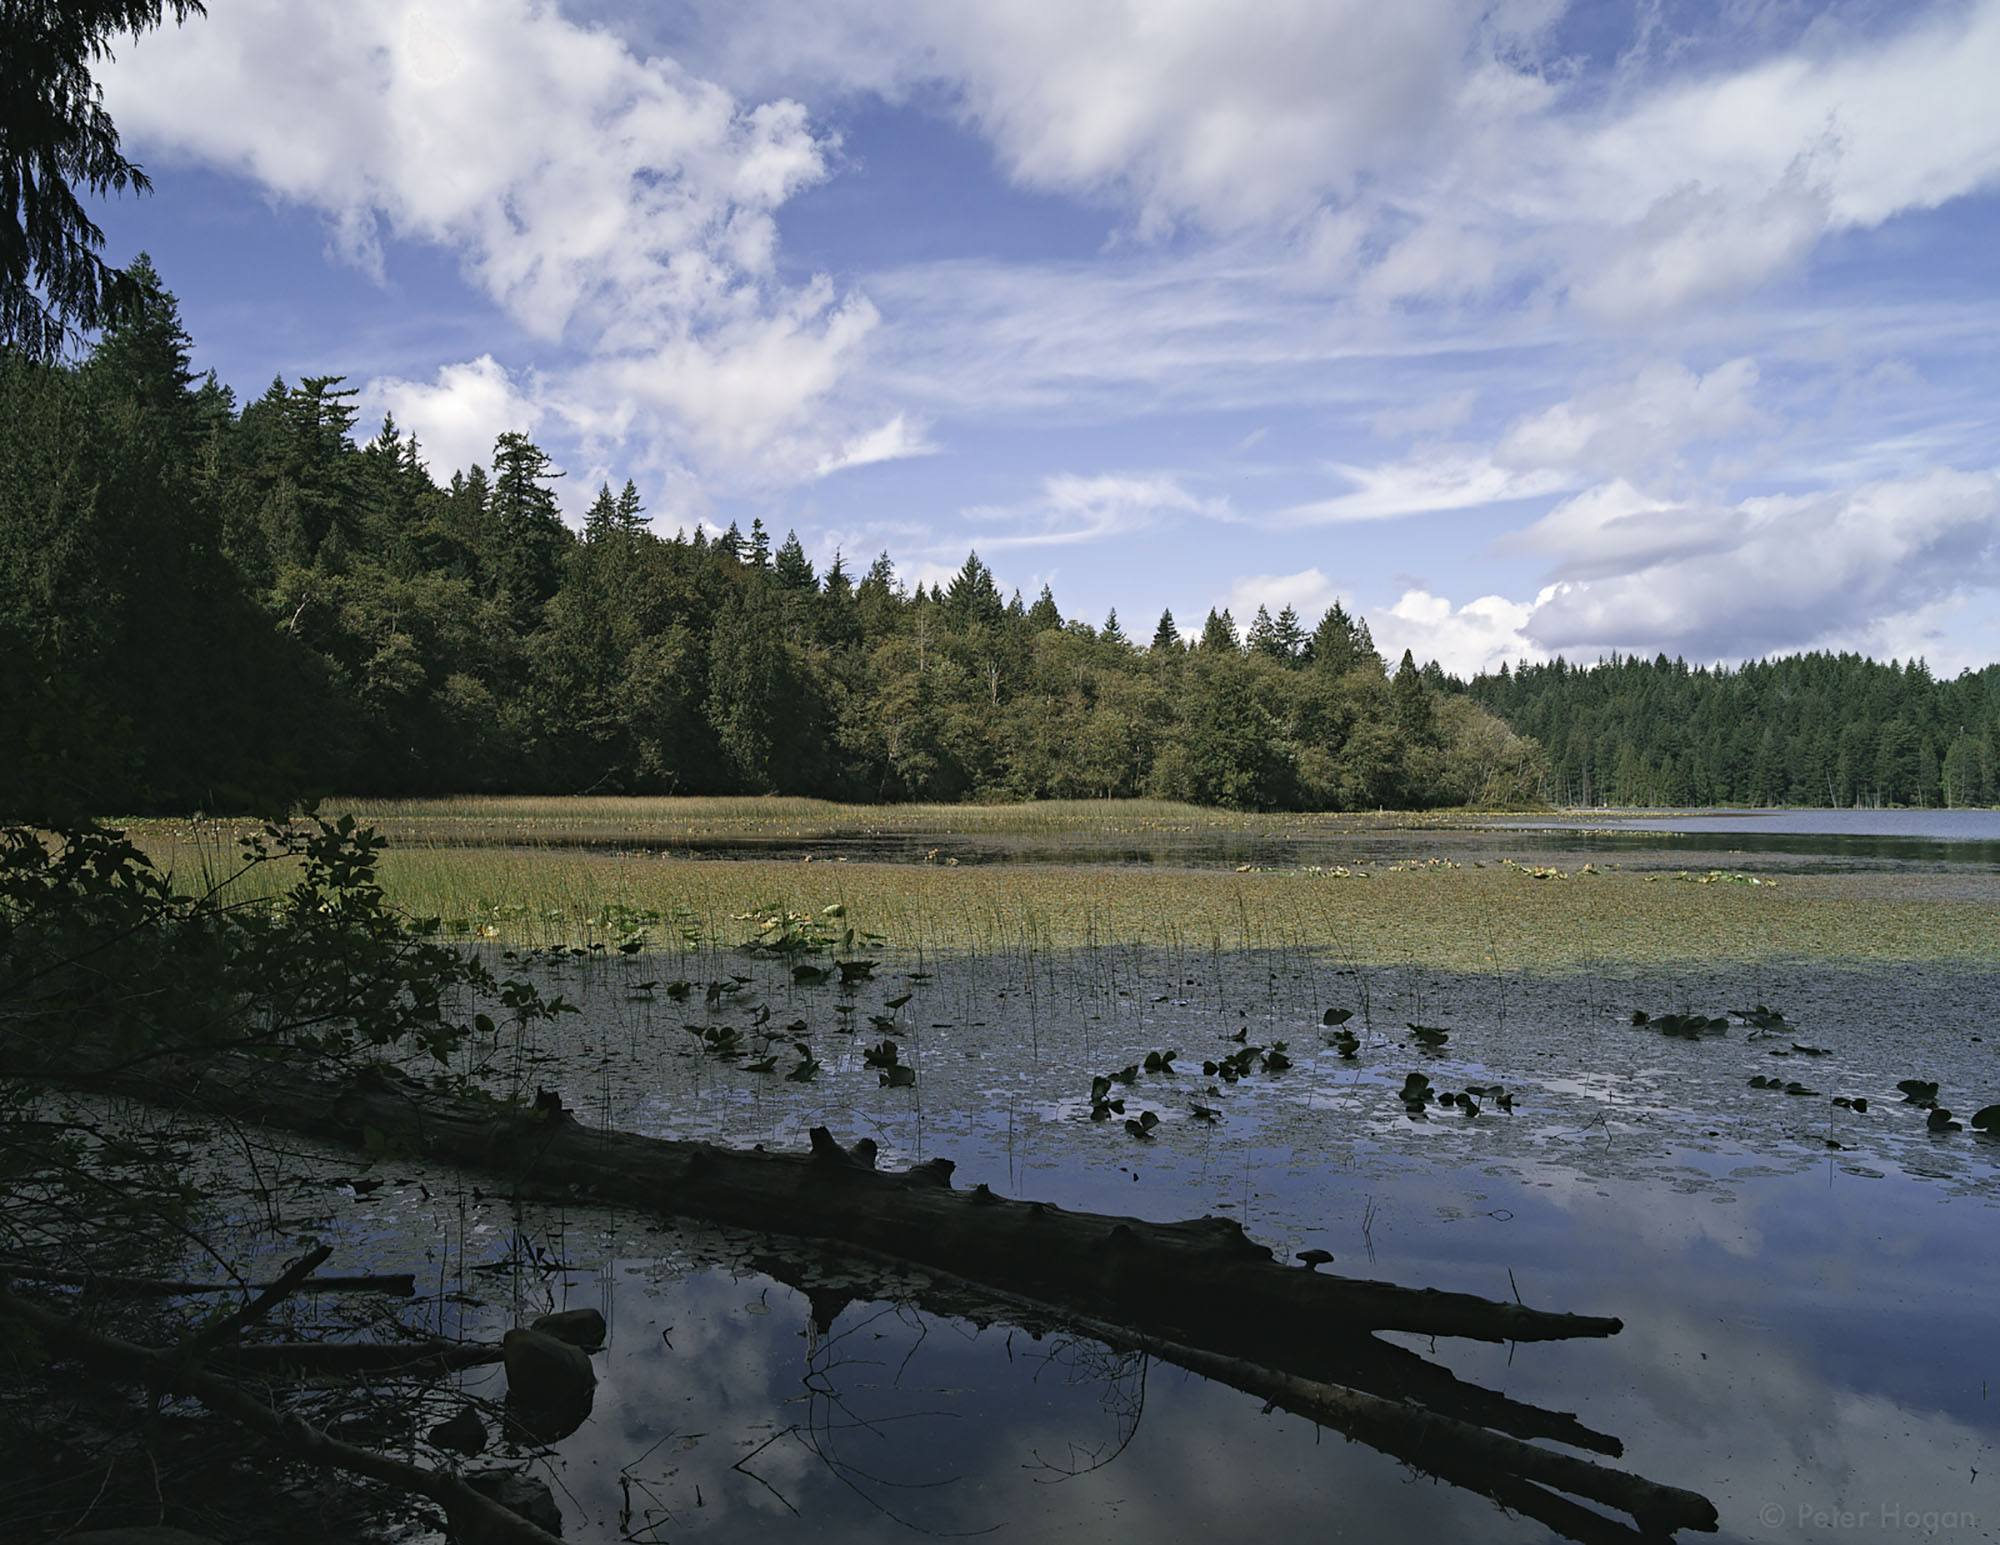 Killarney Lake on Bowen Island, Vancouver (3dpete/Flickr)